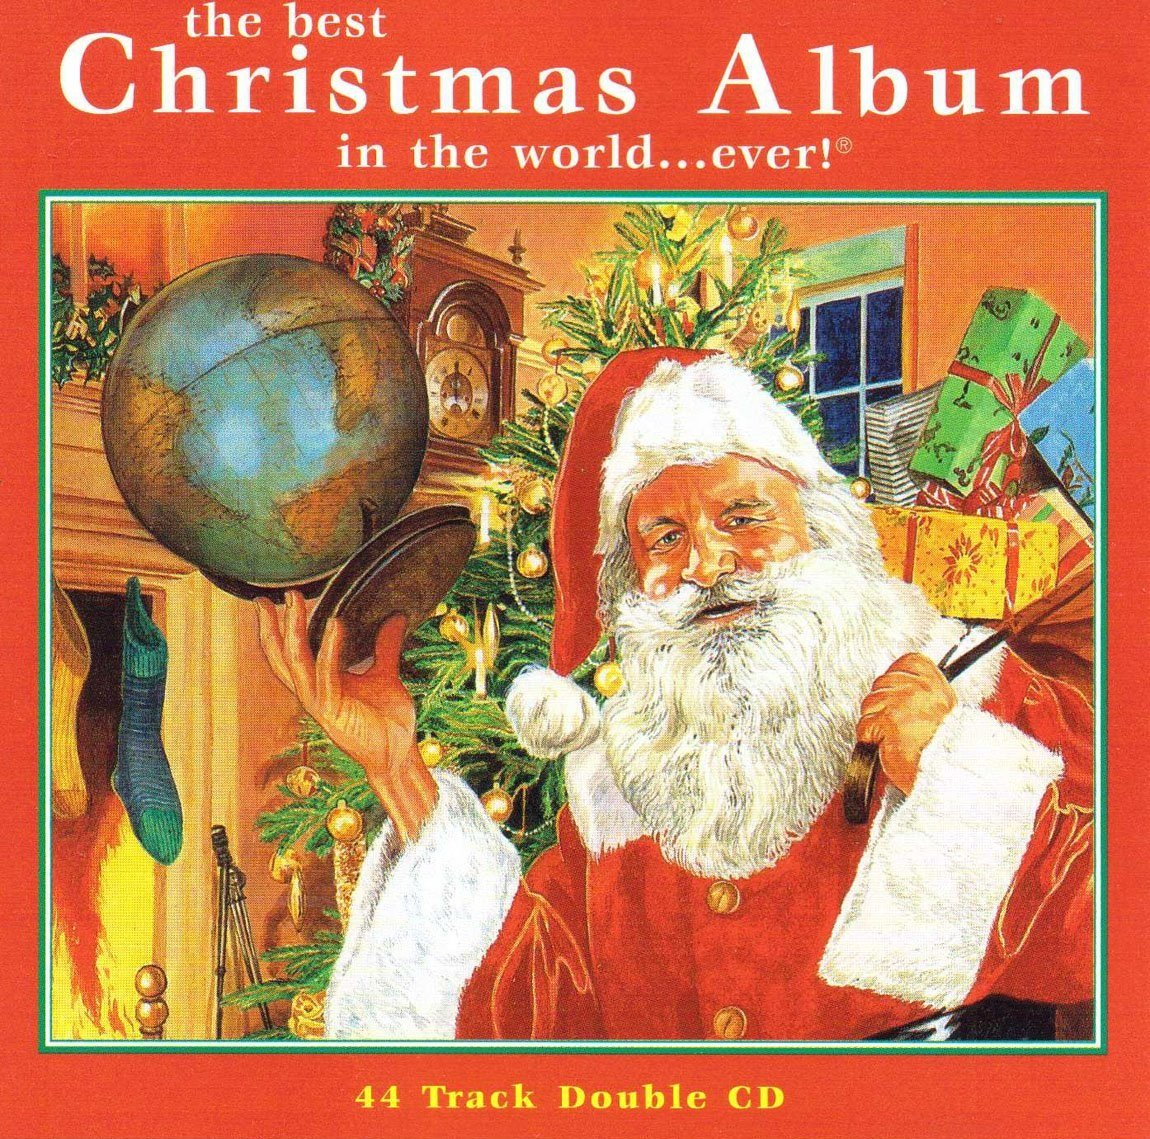 Best Christmas Album in the World Ever